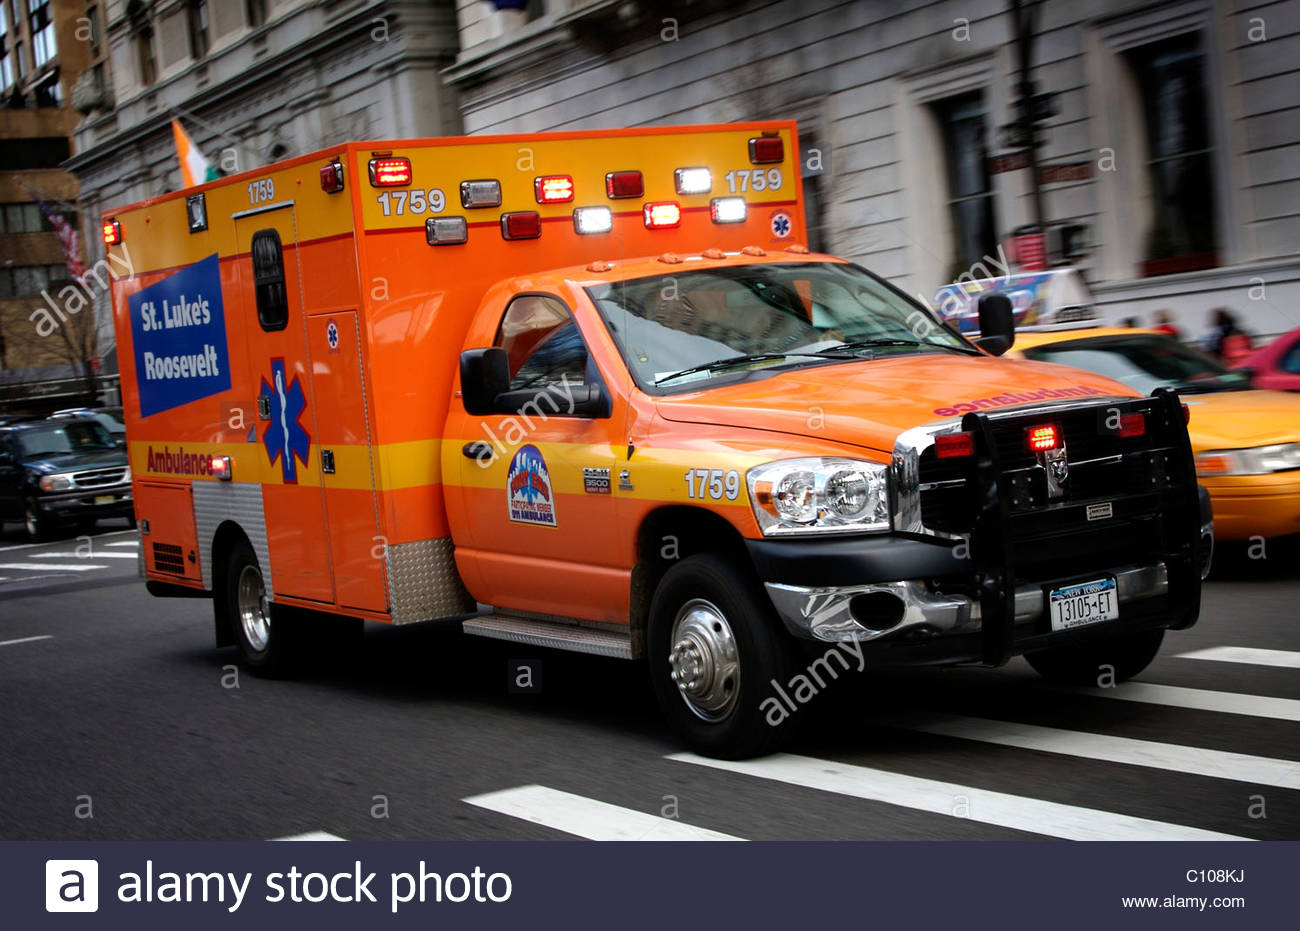 A New York Ambulance on an emergency call in Manhattan, New York, USA - Stock Image